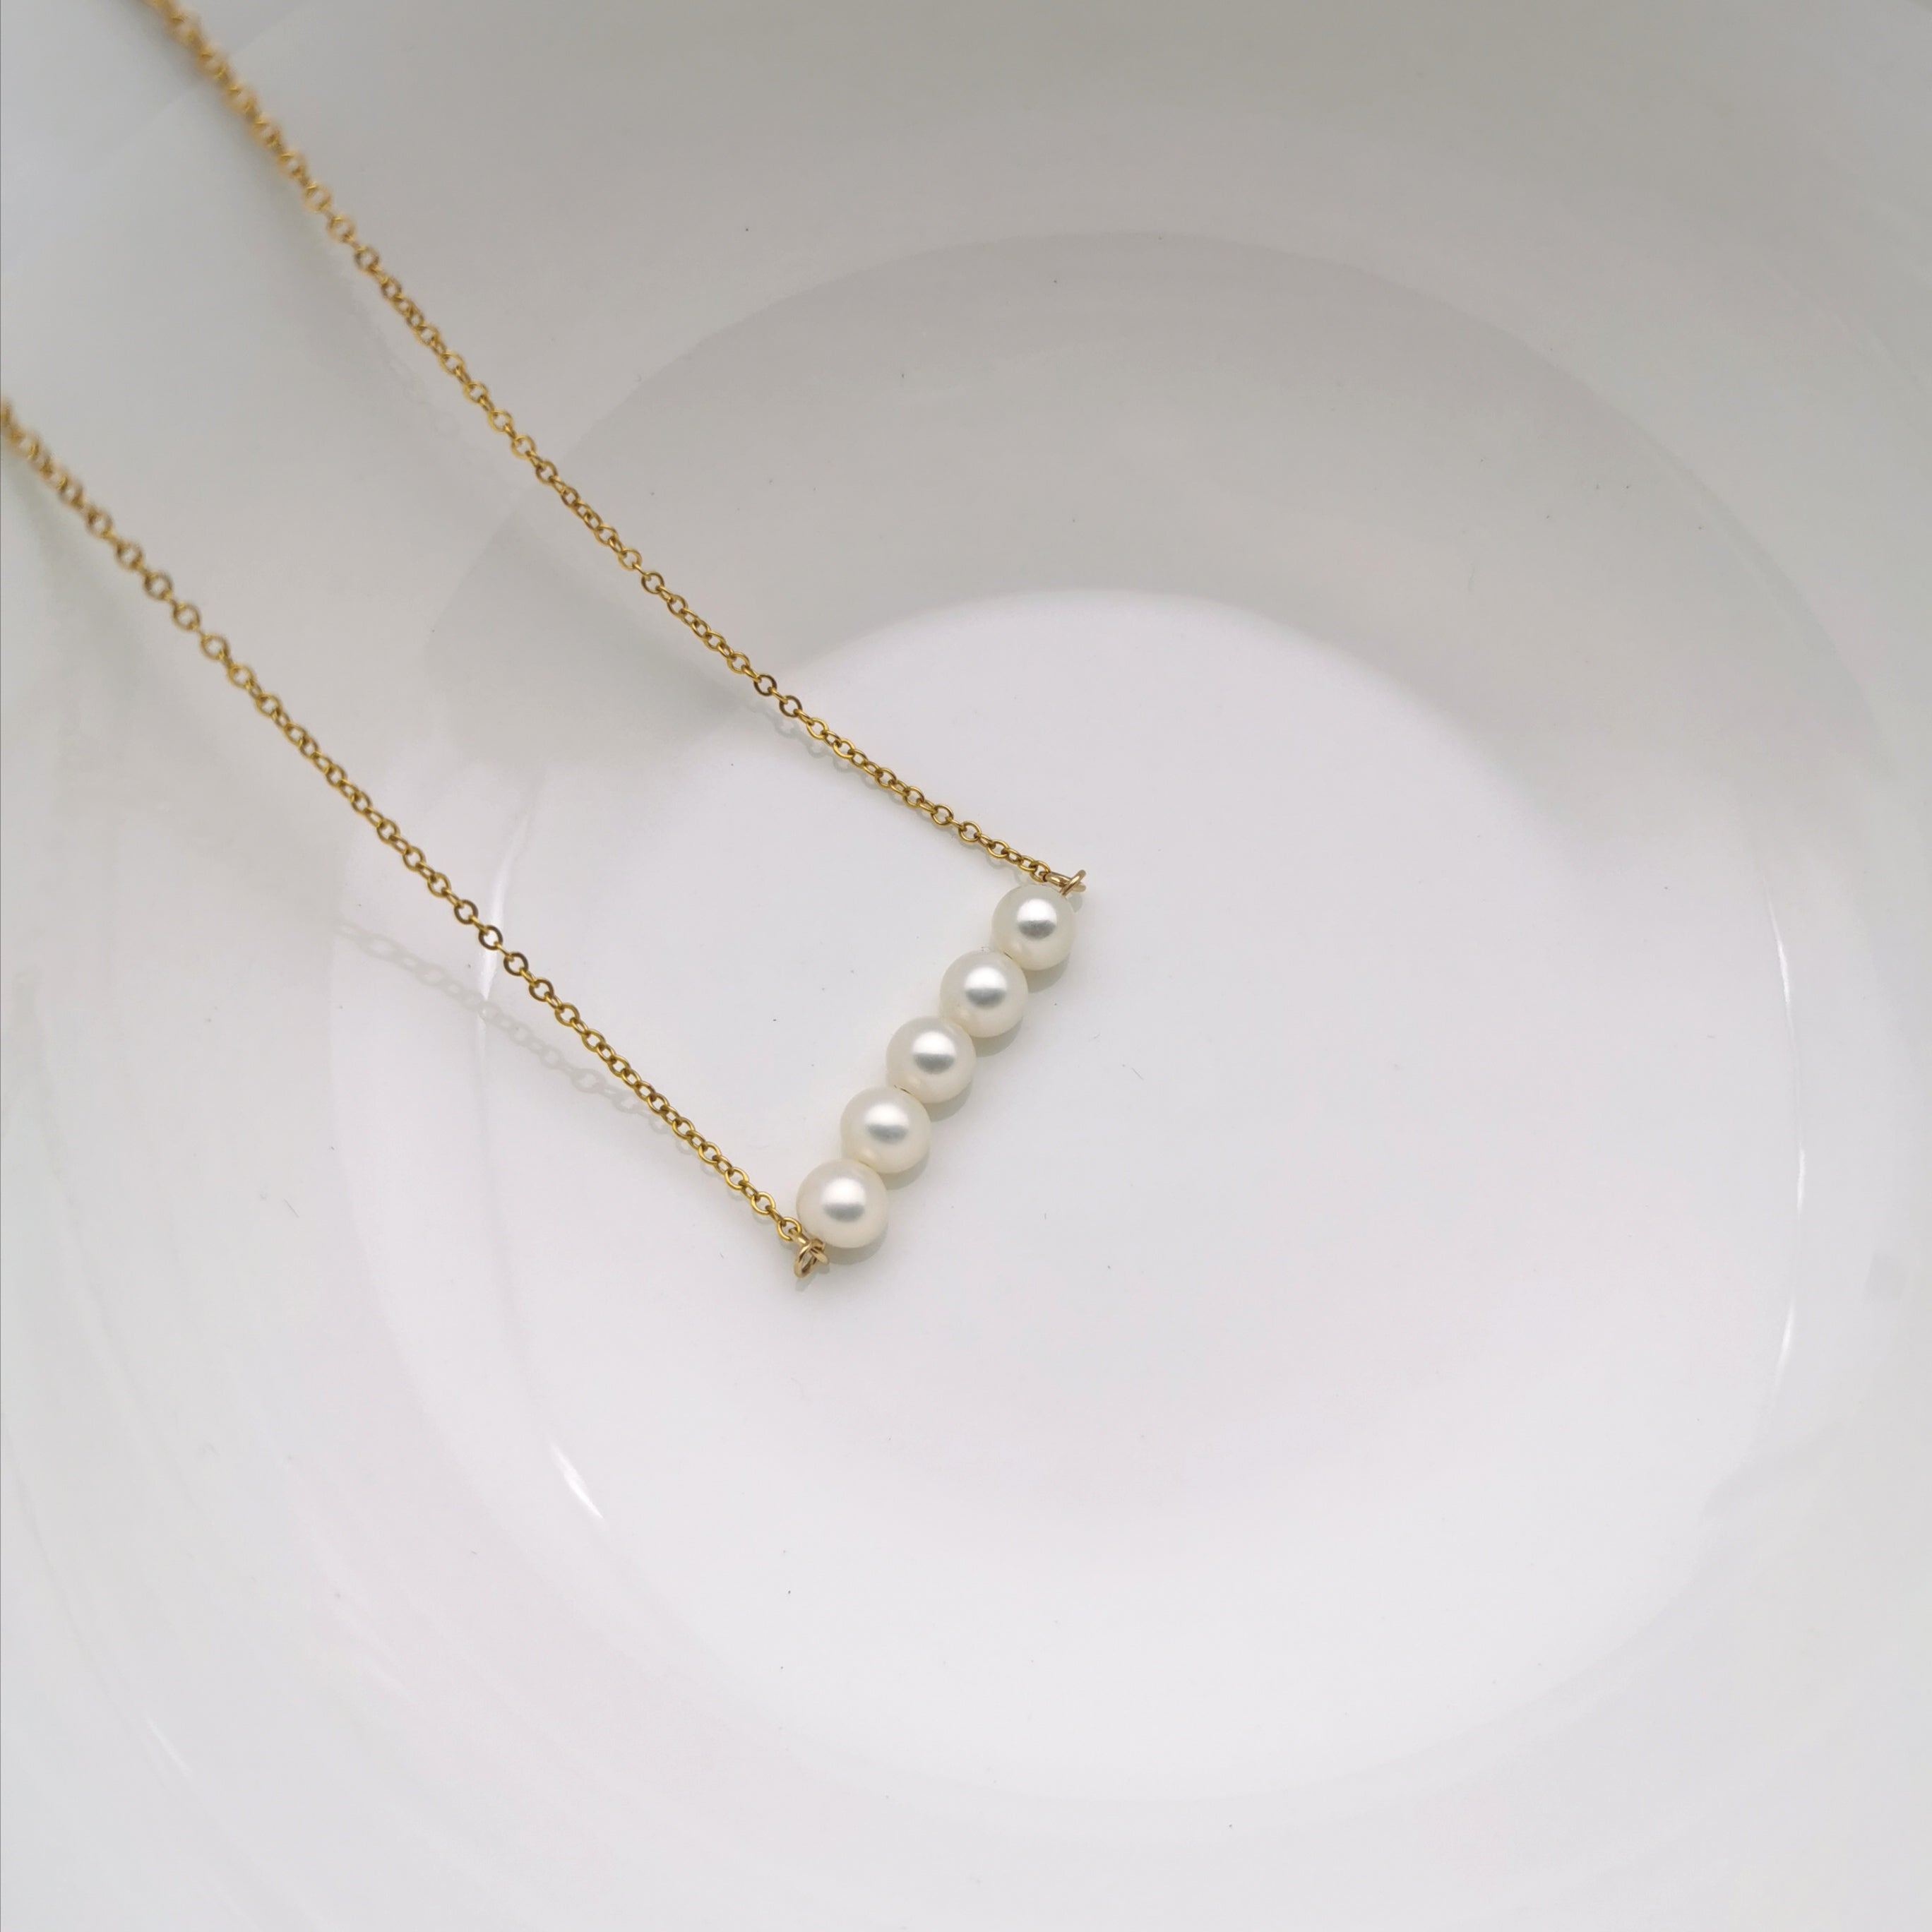 14ct gold filled chain with freshwater pearl necklace